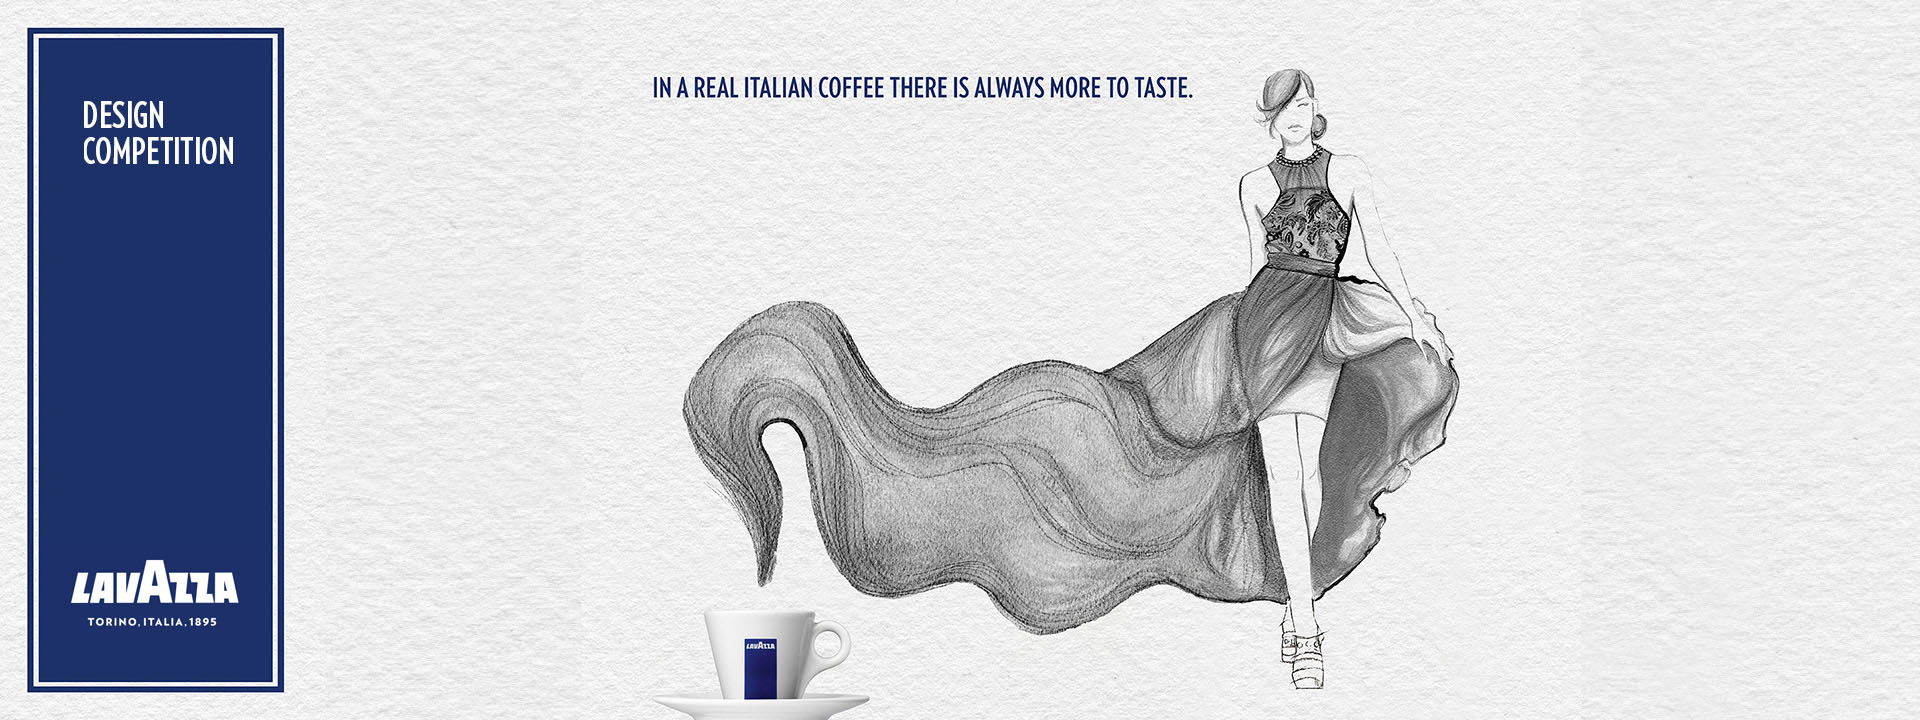 LAVAZZA DESIGN COMPETITION